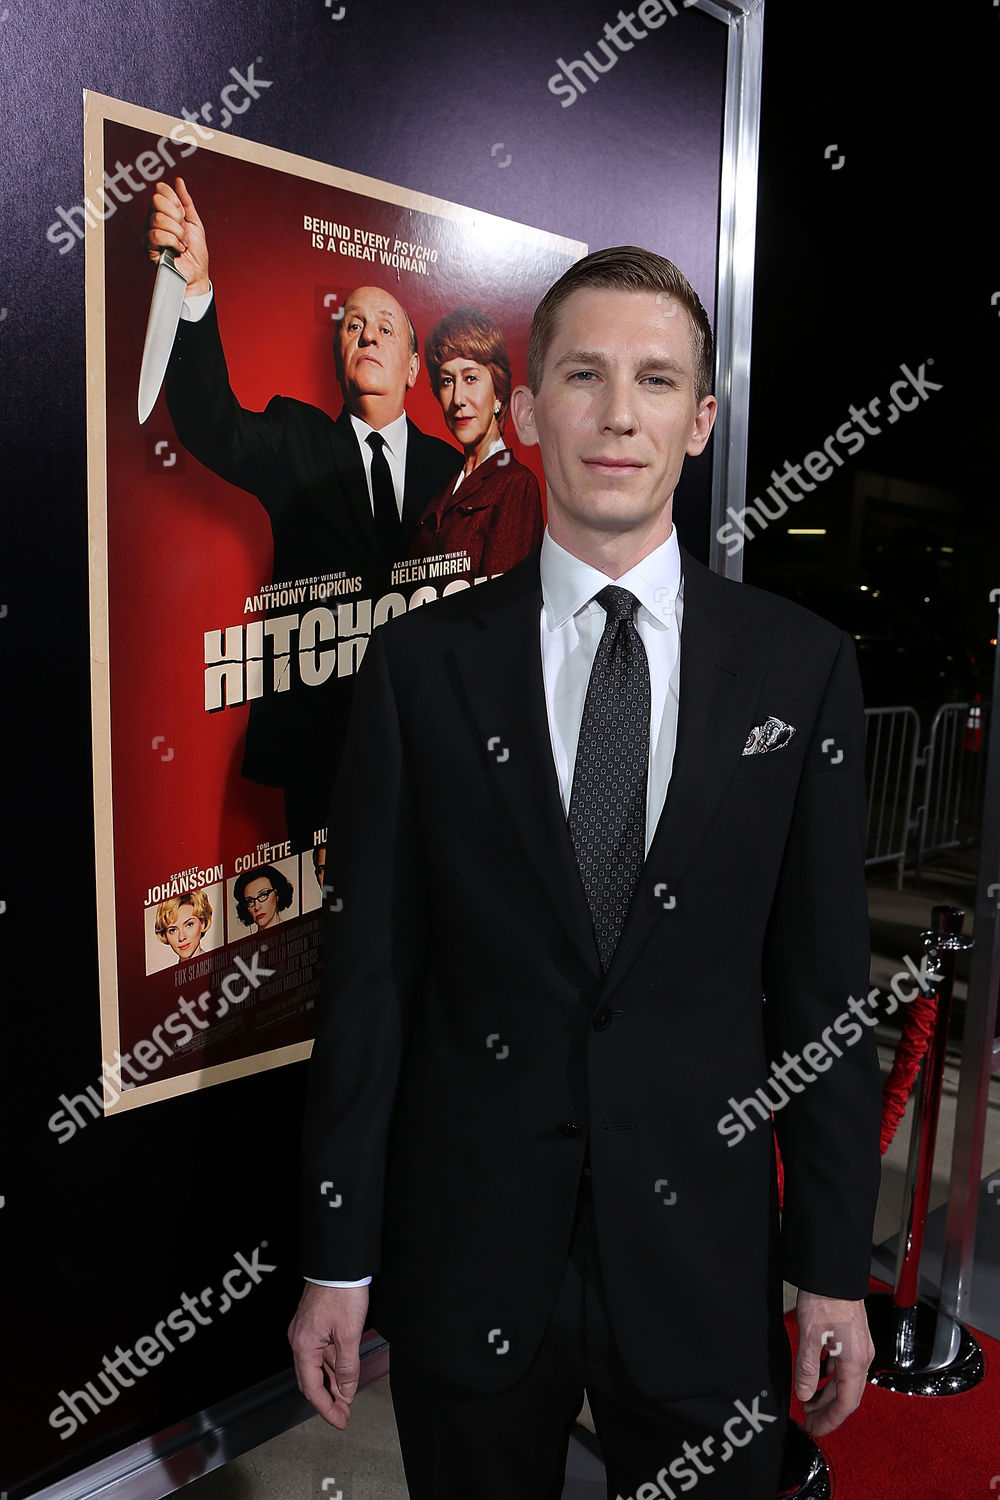 fb73be4fe0e ... Pictures' 'Hitchcock' Los Angeles Premiere Beverly Hills Los Angeles,  America. Stock Image by Eric Charbonneau for editorial use, Nov 20, 2012